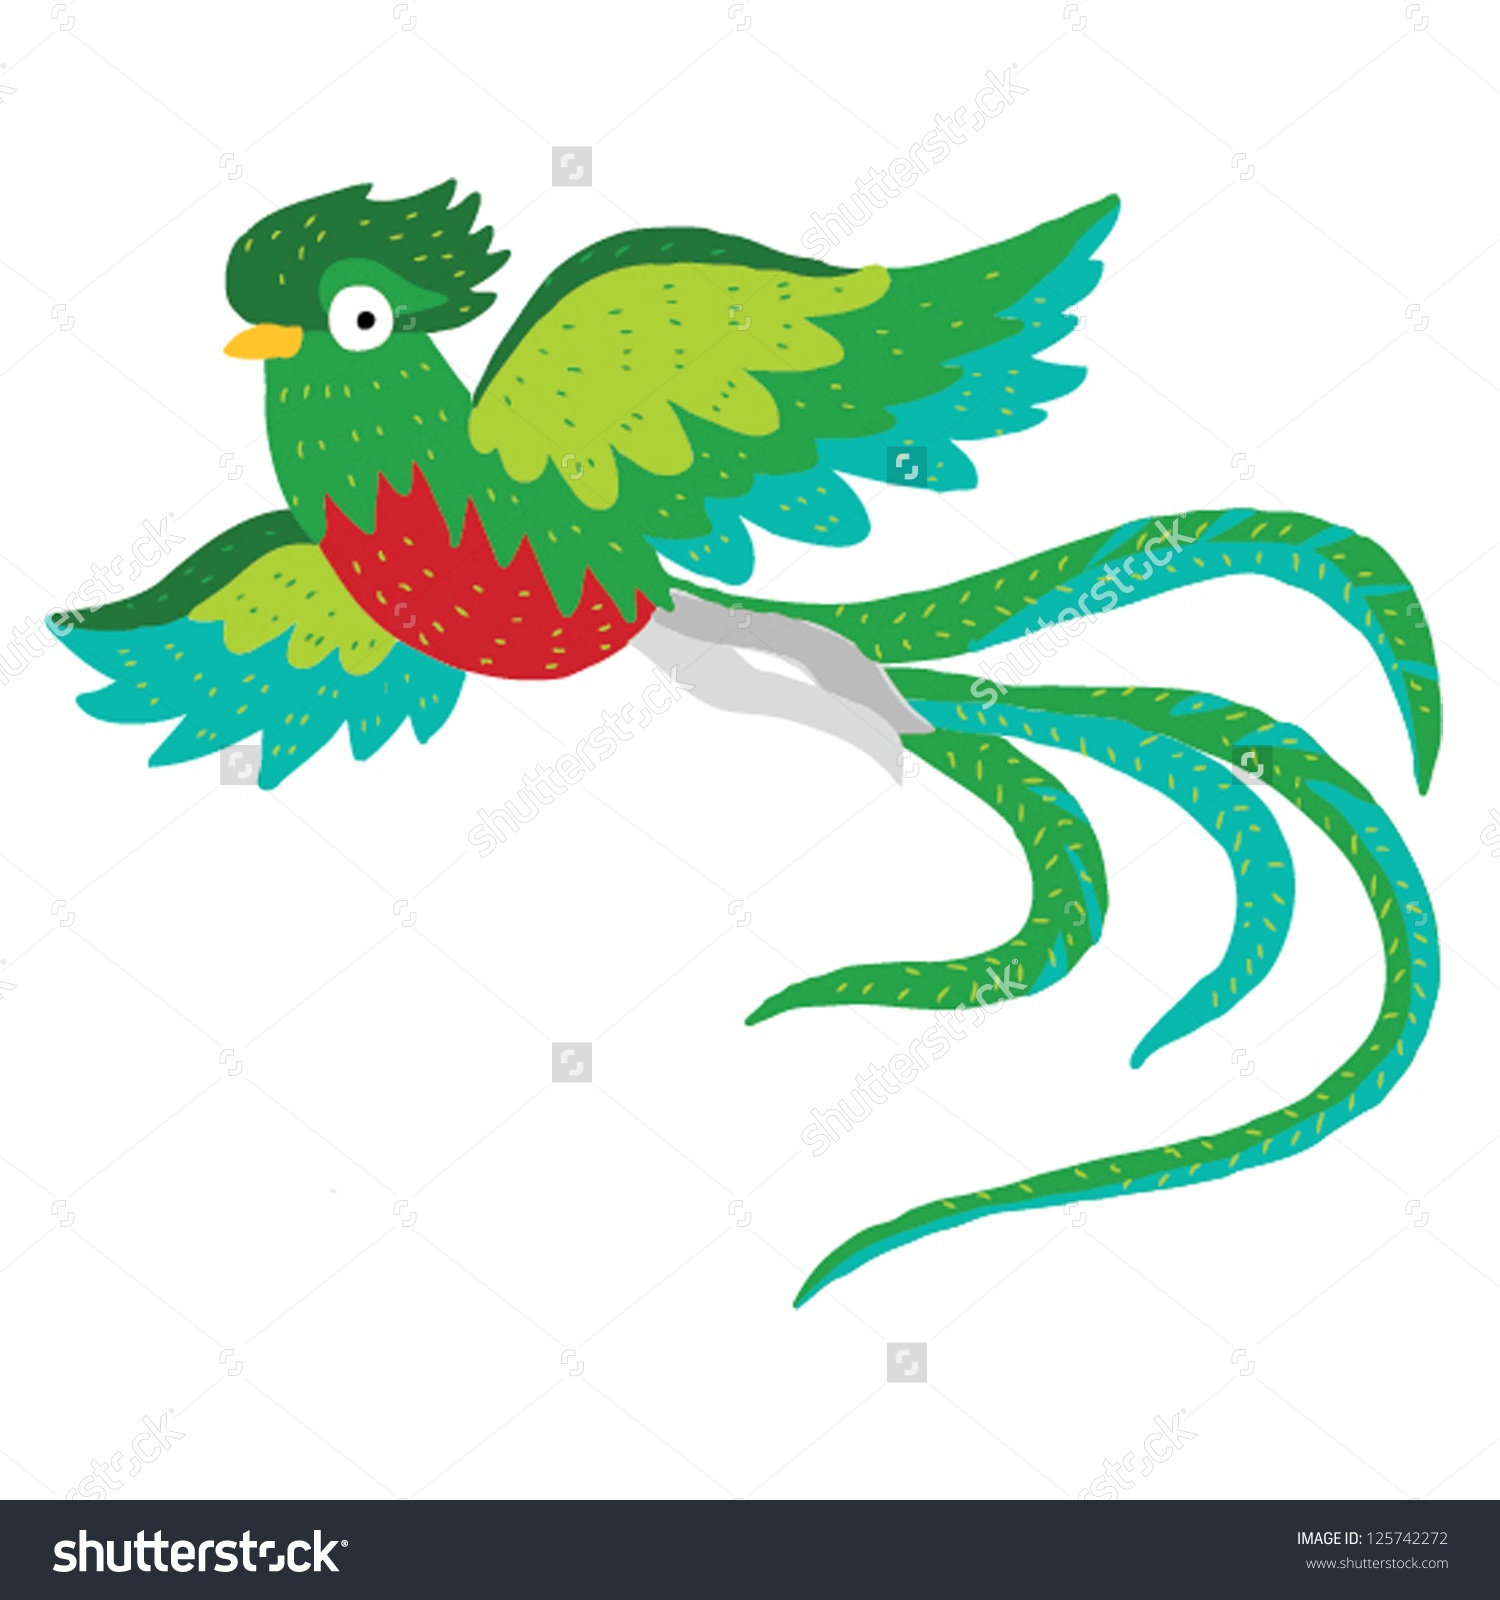 Quetzal  clipart #1, Download drawings